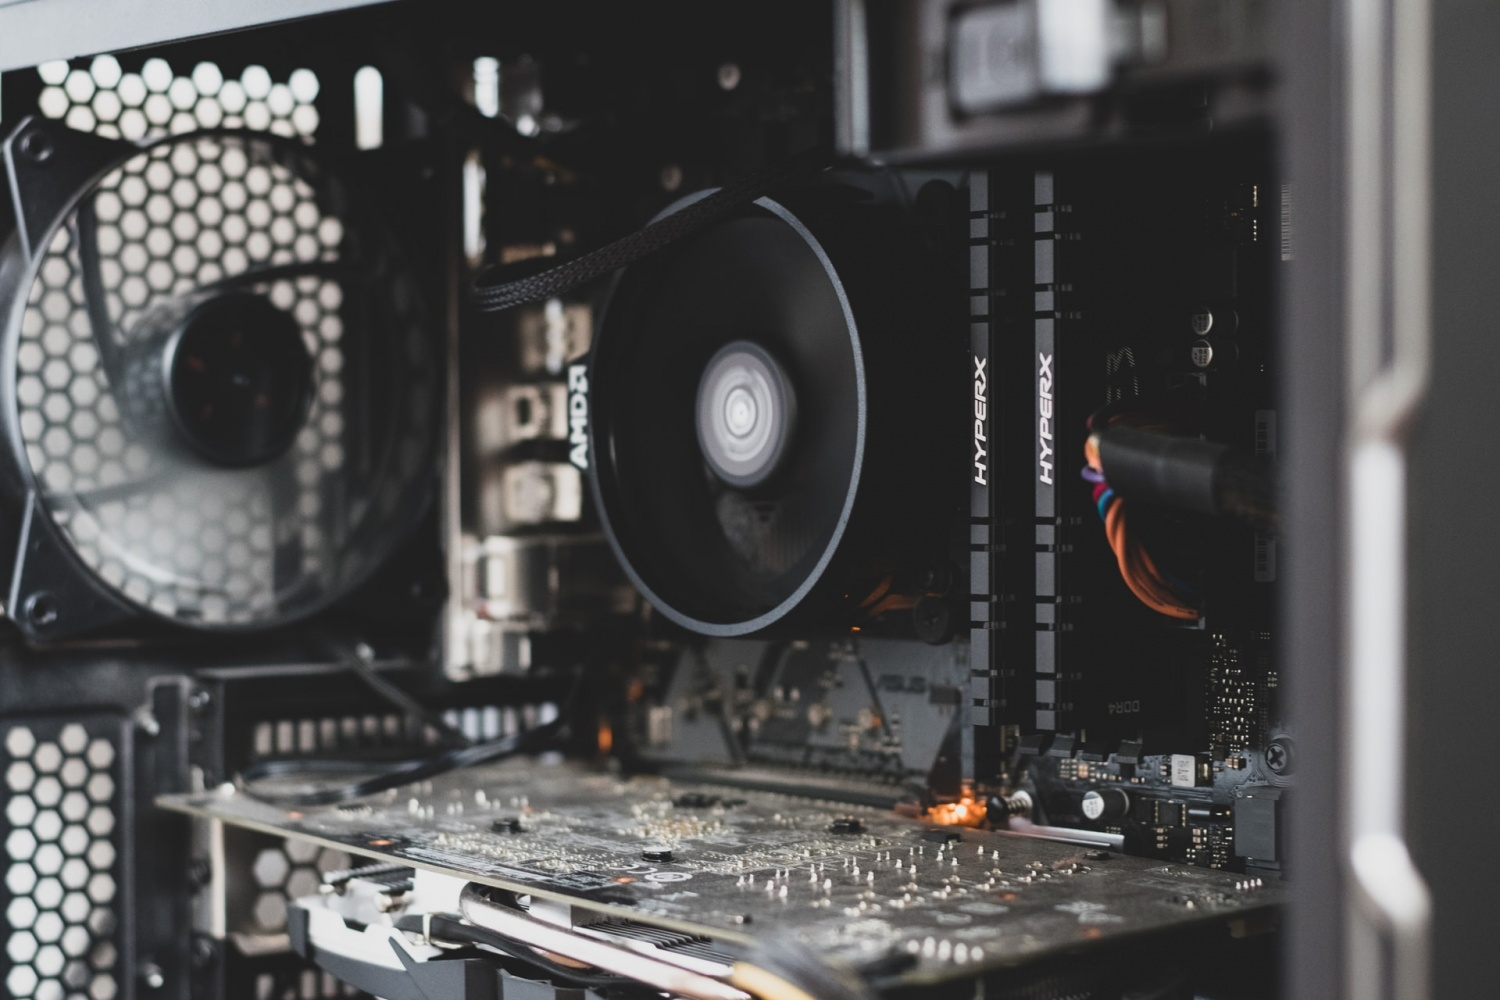 AMD Radeon RX 6900 XT Breaks World Record for Graphics Card Speed: Price and Where to Buy One